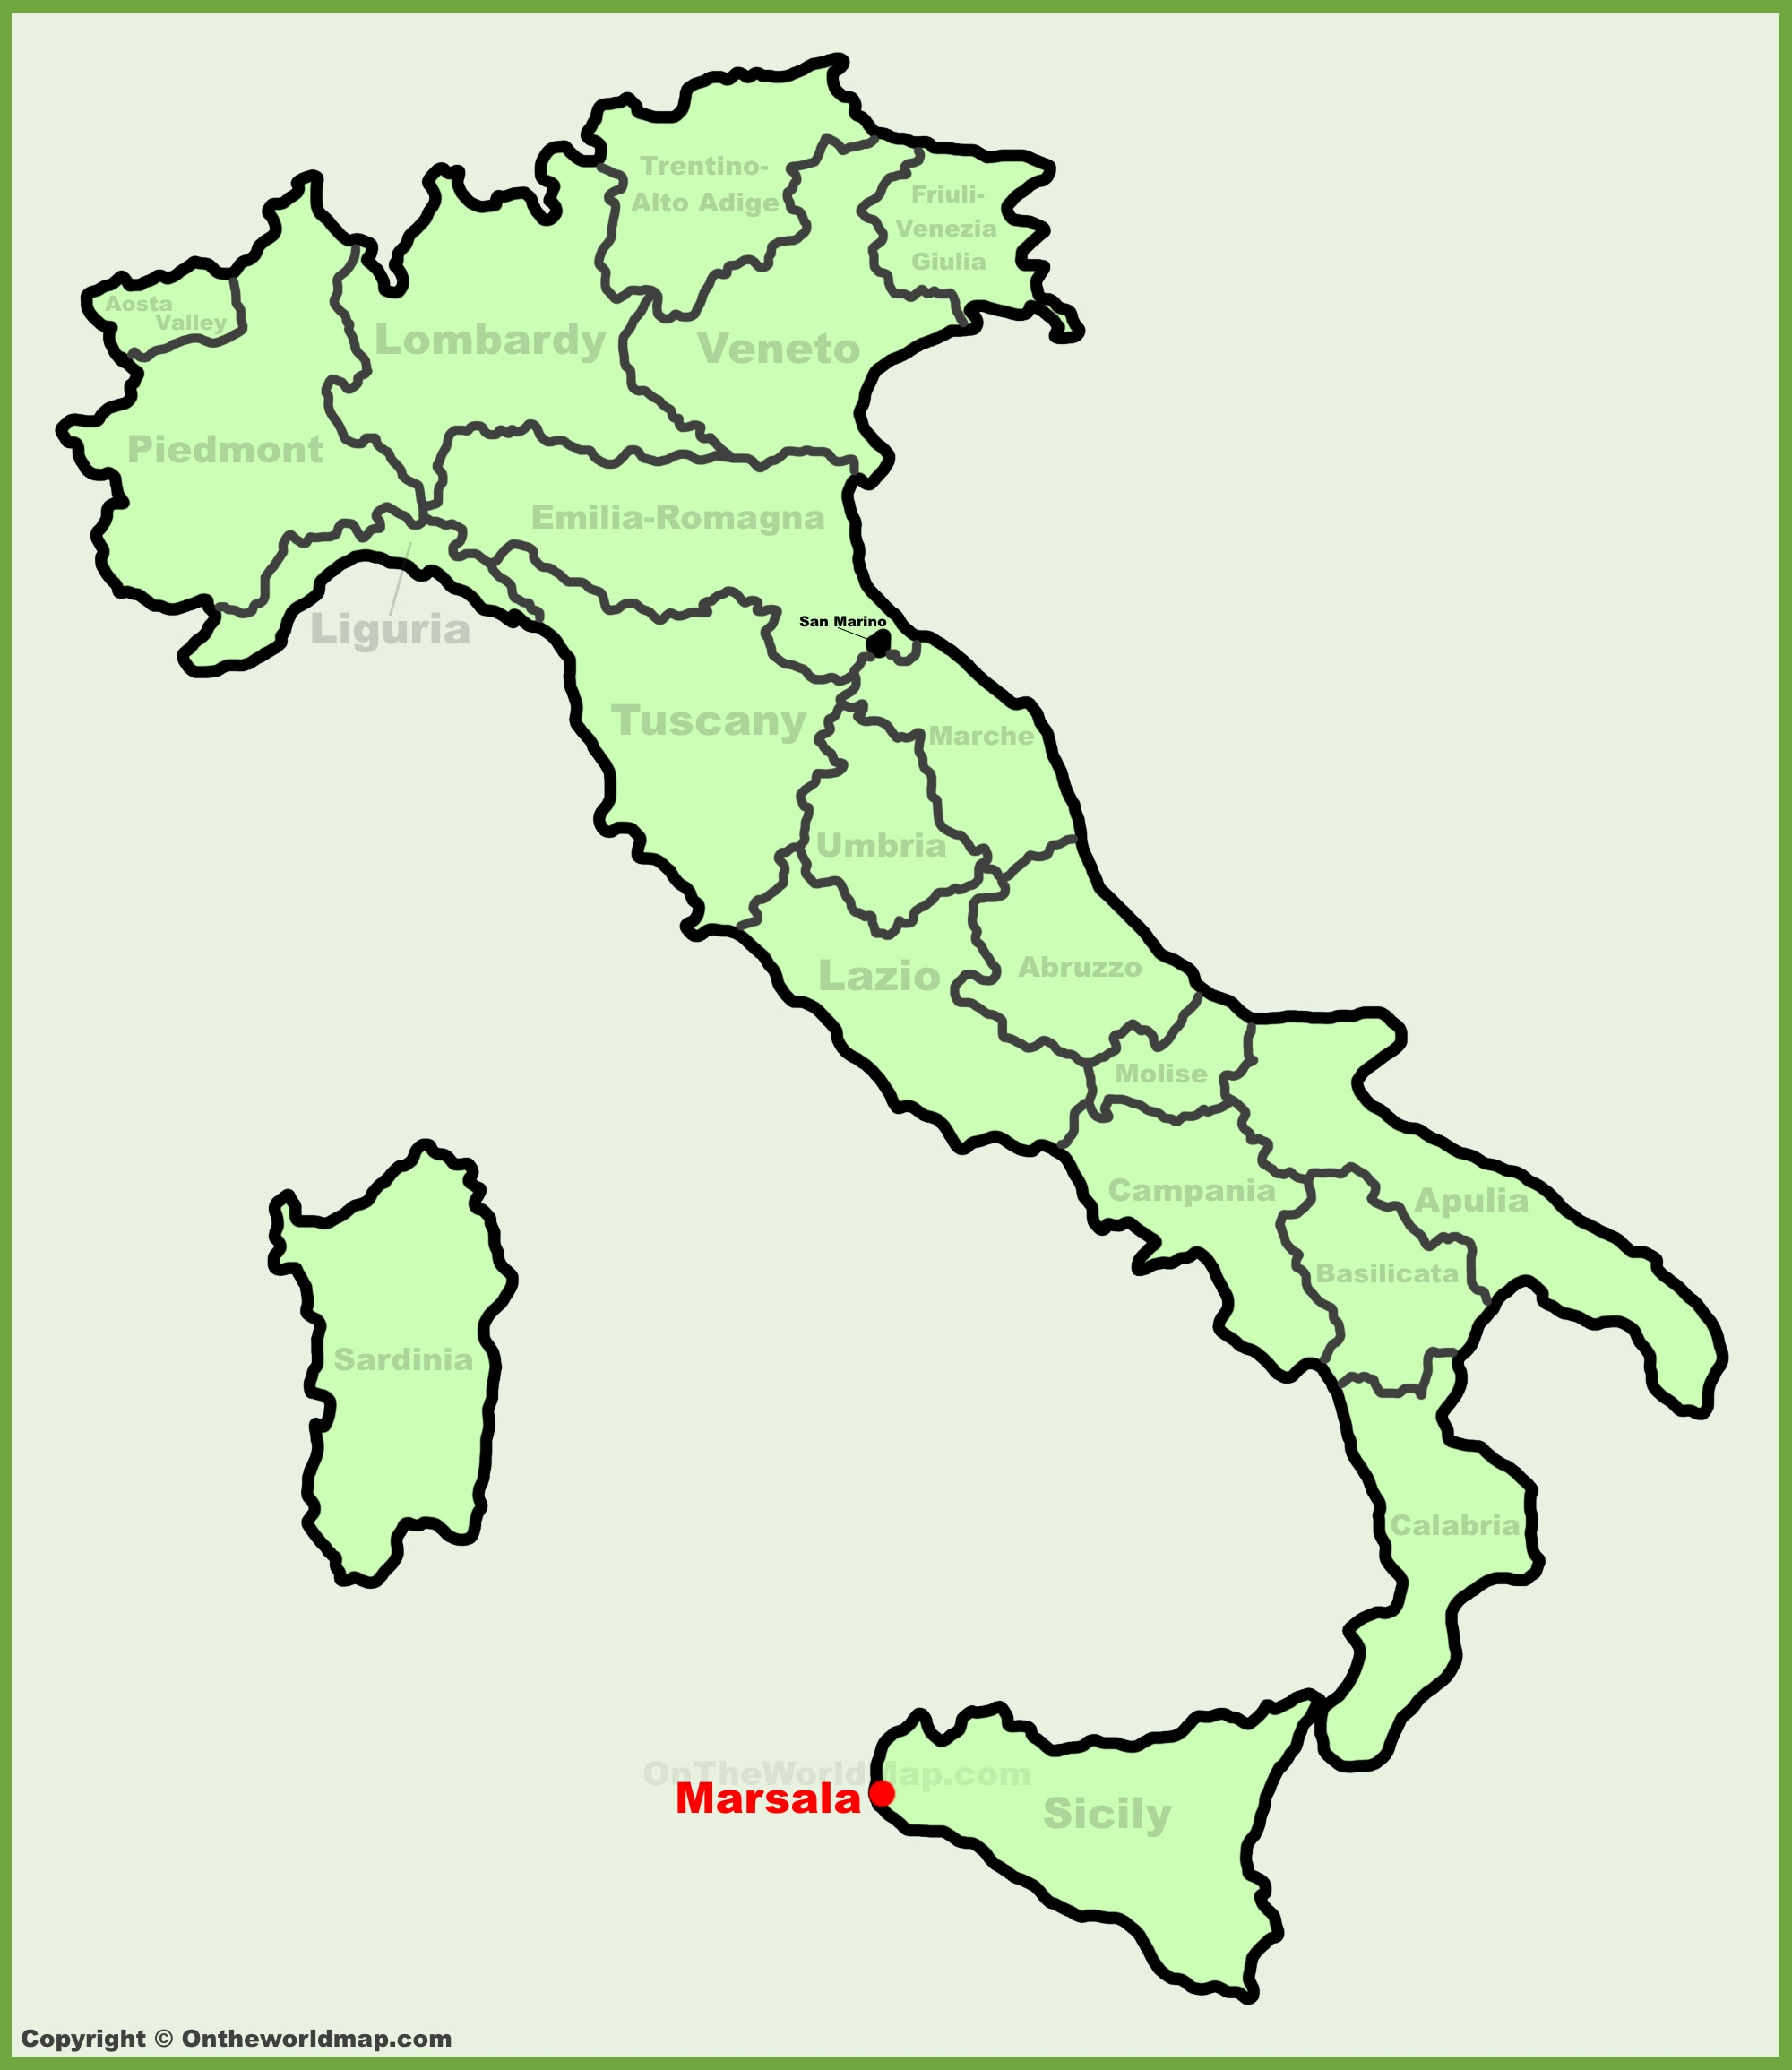 Marsala location on the Italy map